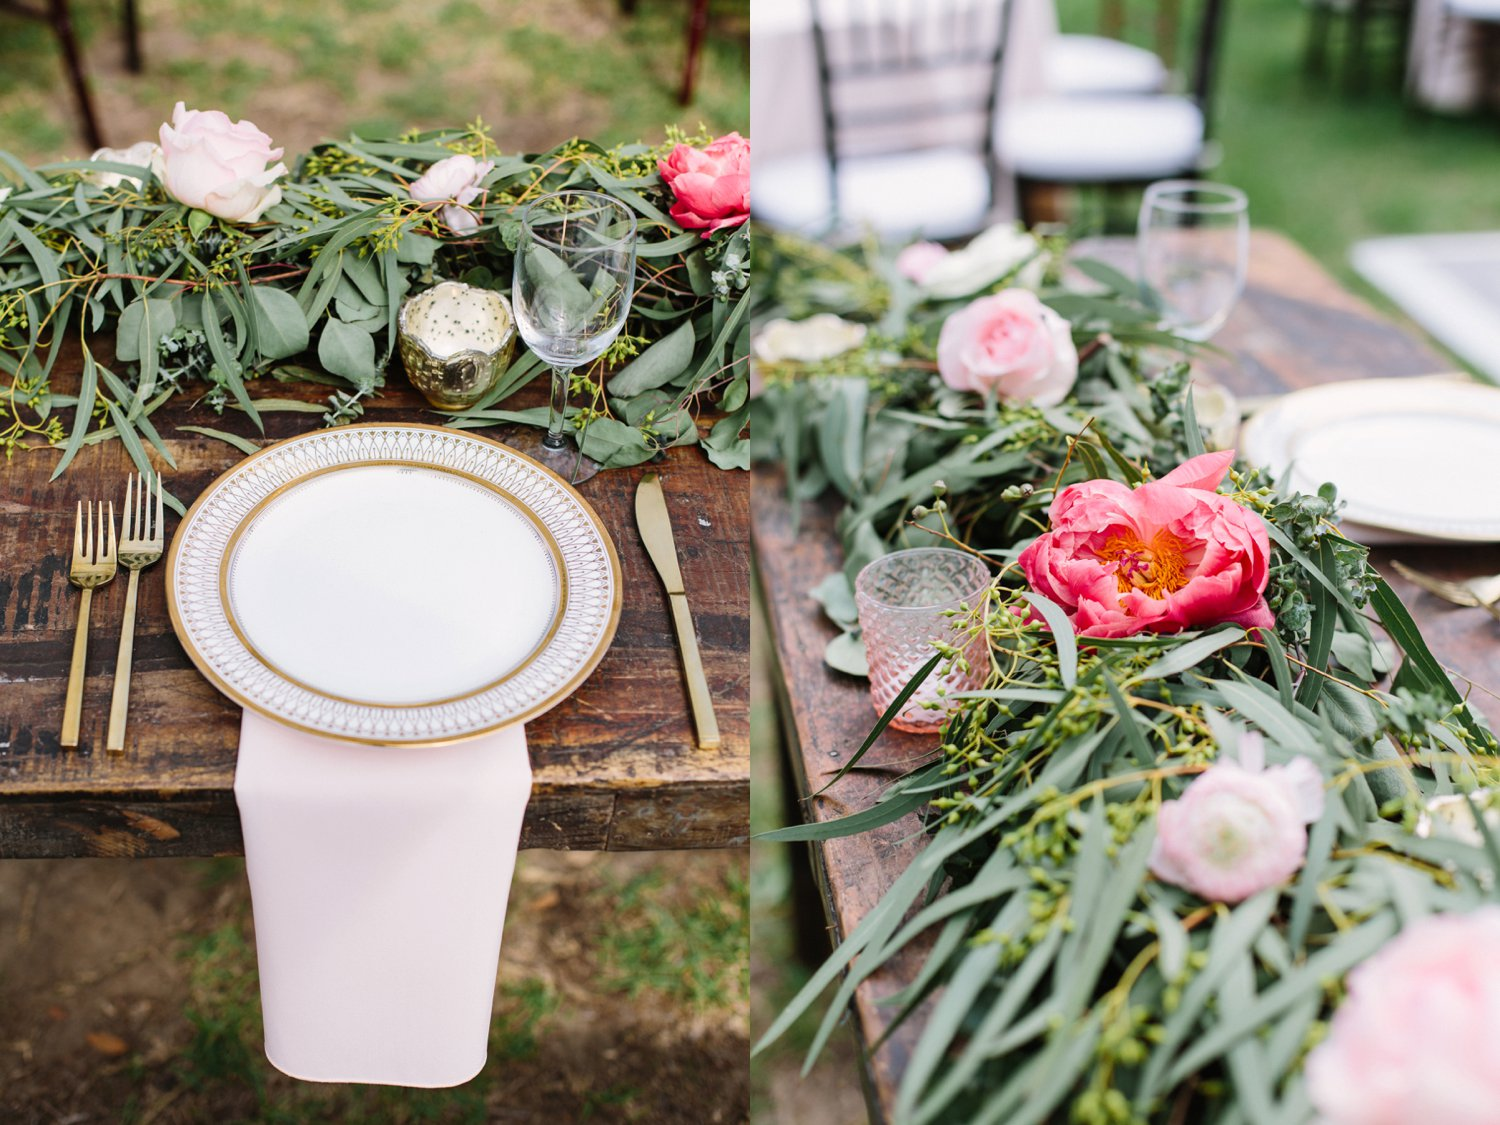 Lindsey_A_Miller_Photography_mcleod_plantation_wedding_charleston_south_carolina_clear_tent_spring_mod_events_057.jpg